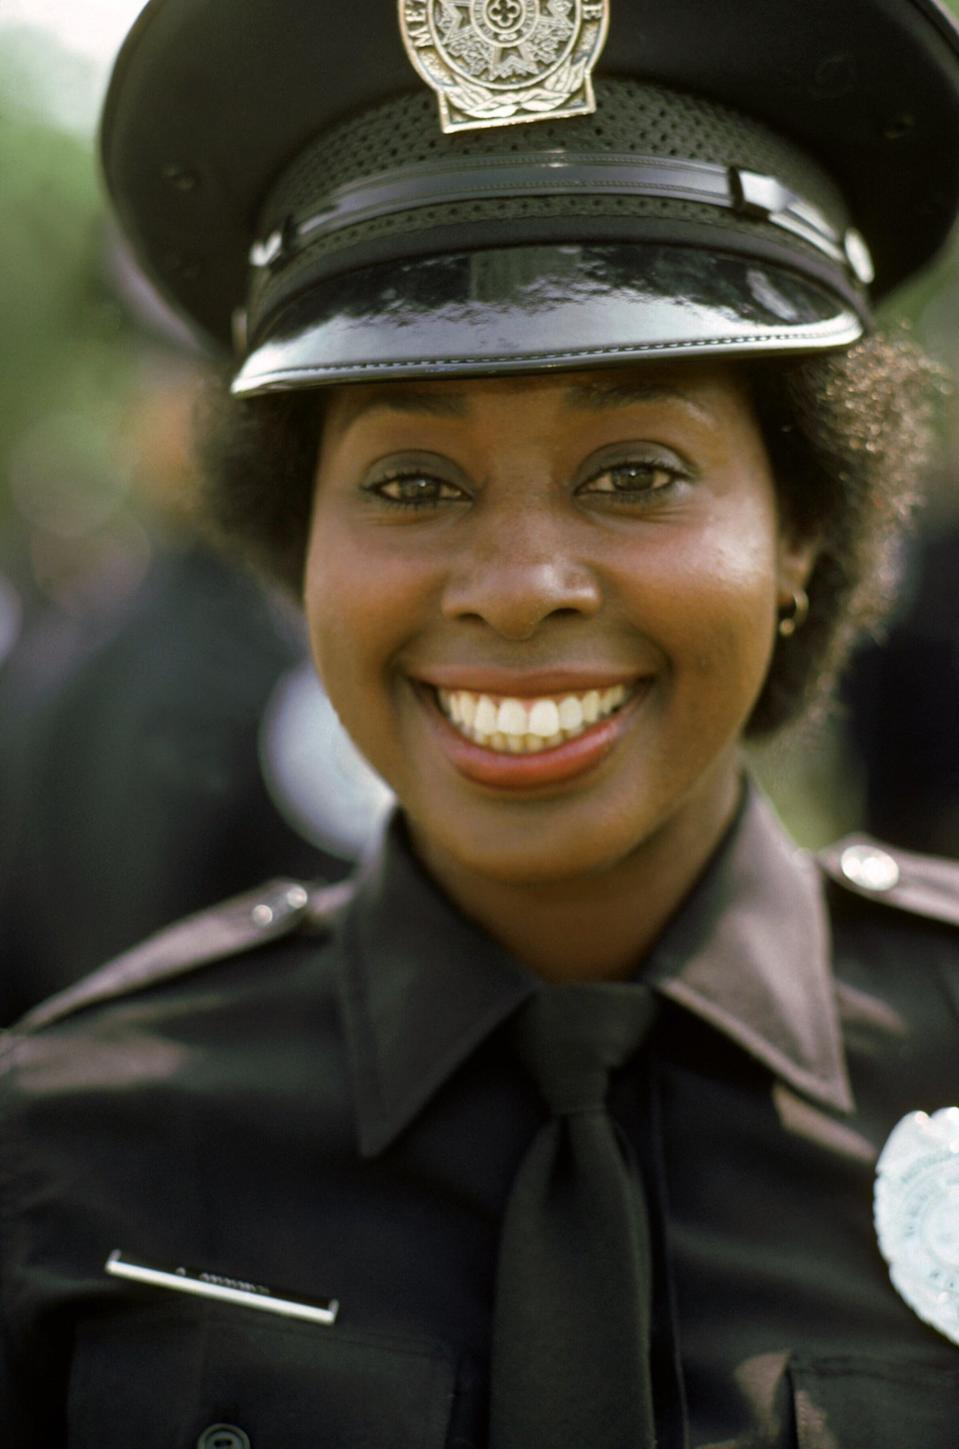 <p>On Jan 7., <strong>Police Academy</strong> star Marion Ramsay has died at the age of 73. The actor died at her home in Los Angeles following a brief illness her management confirmed the the BBC. </p>